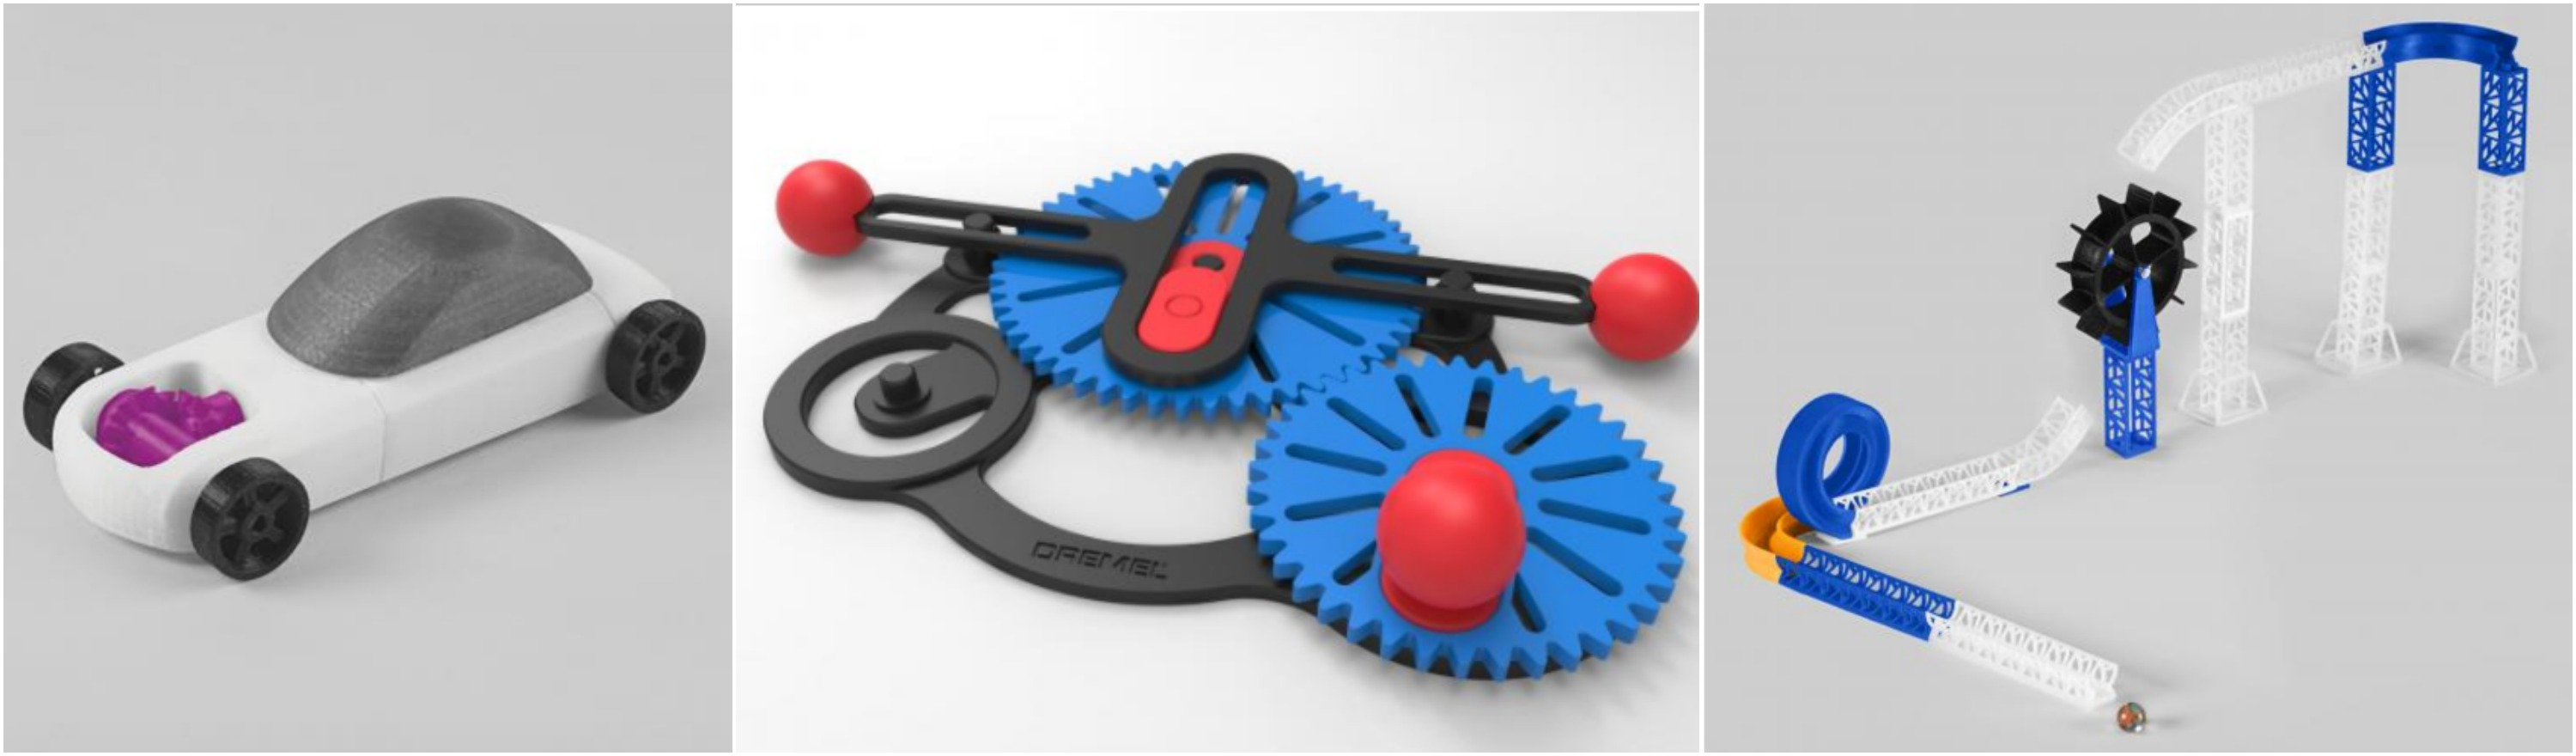 STEM & Physics 3D Printing Models for the Classroom